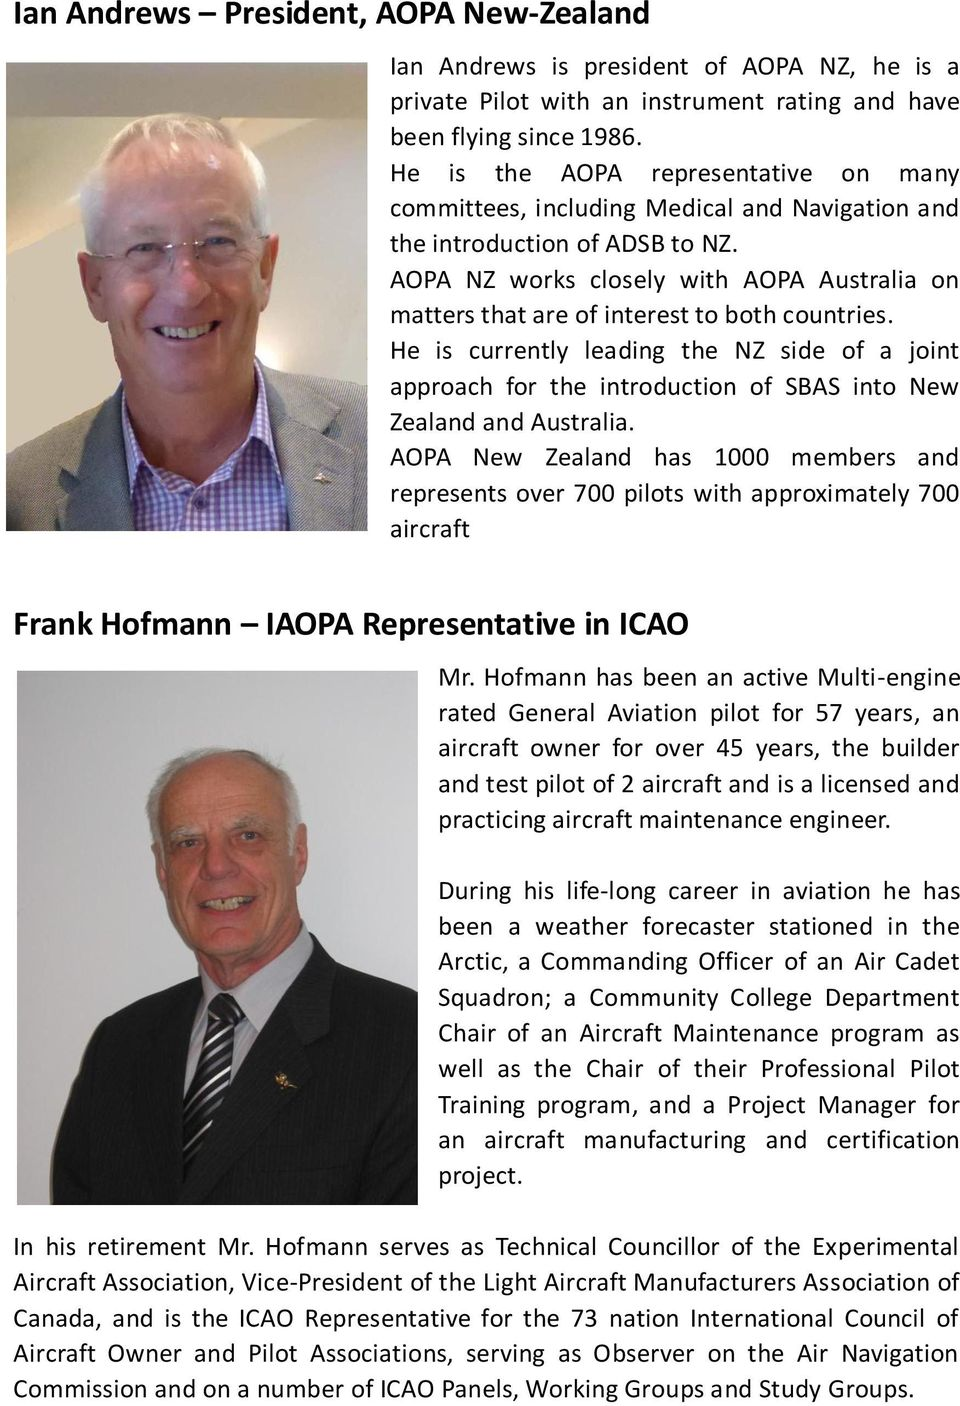 AOPA NZ works closely with AOPA Australia on matters that are of interest to both countries.